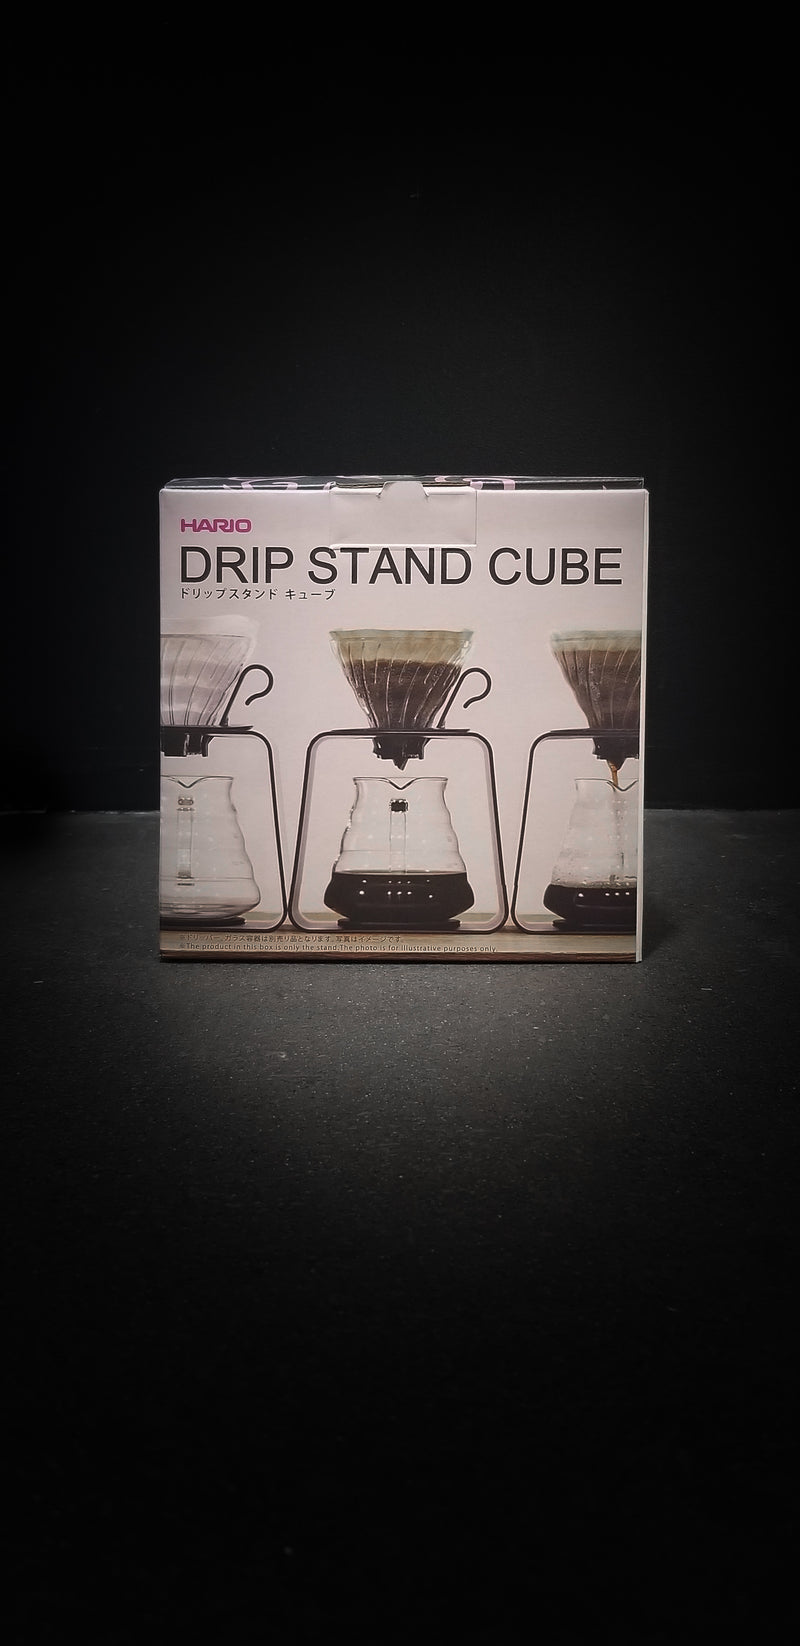 Hario Drip Stand Cube